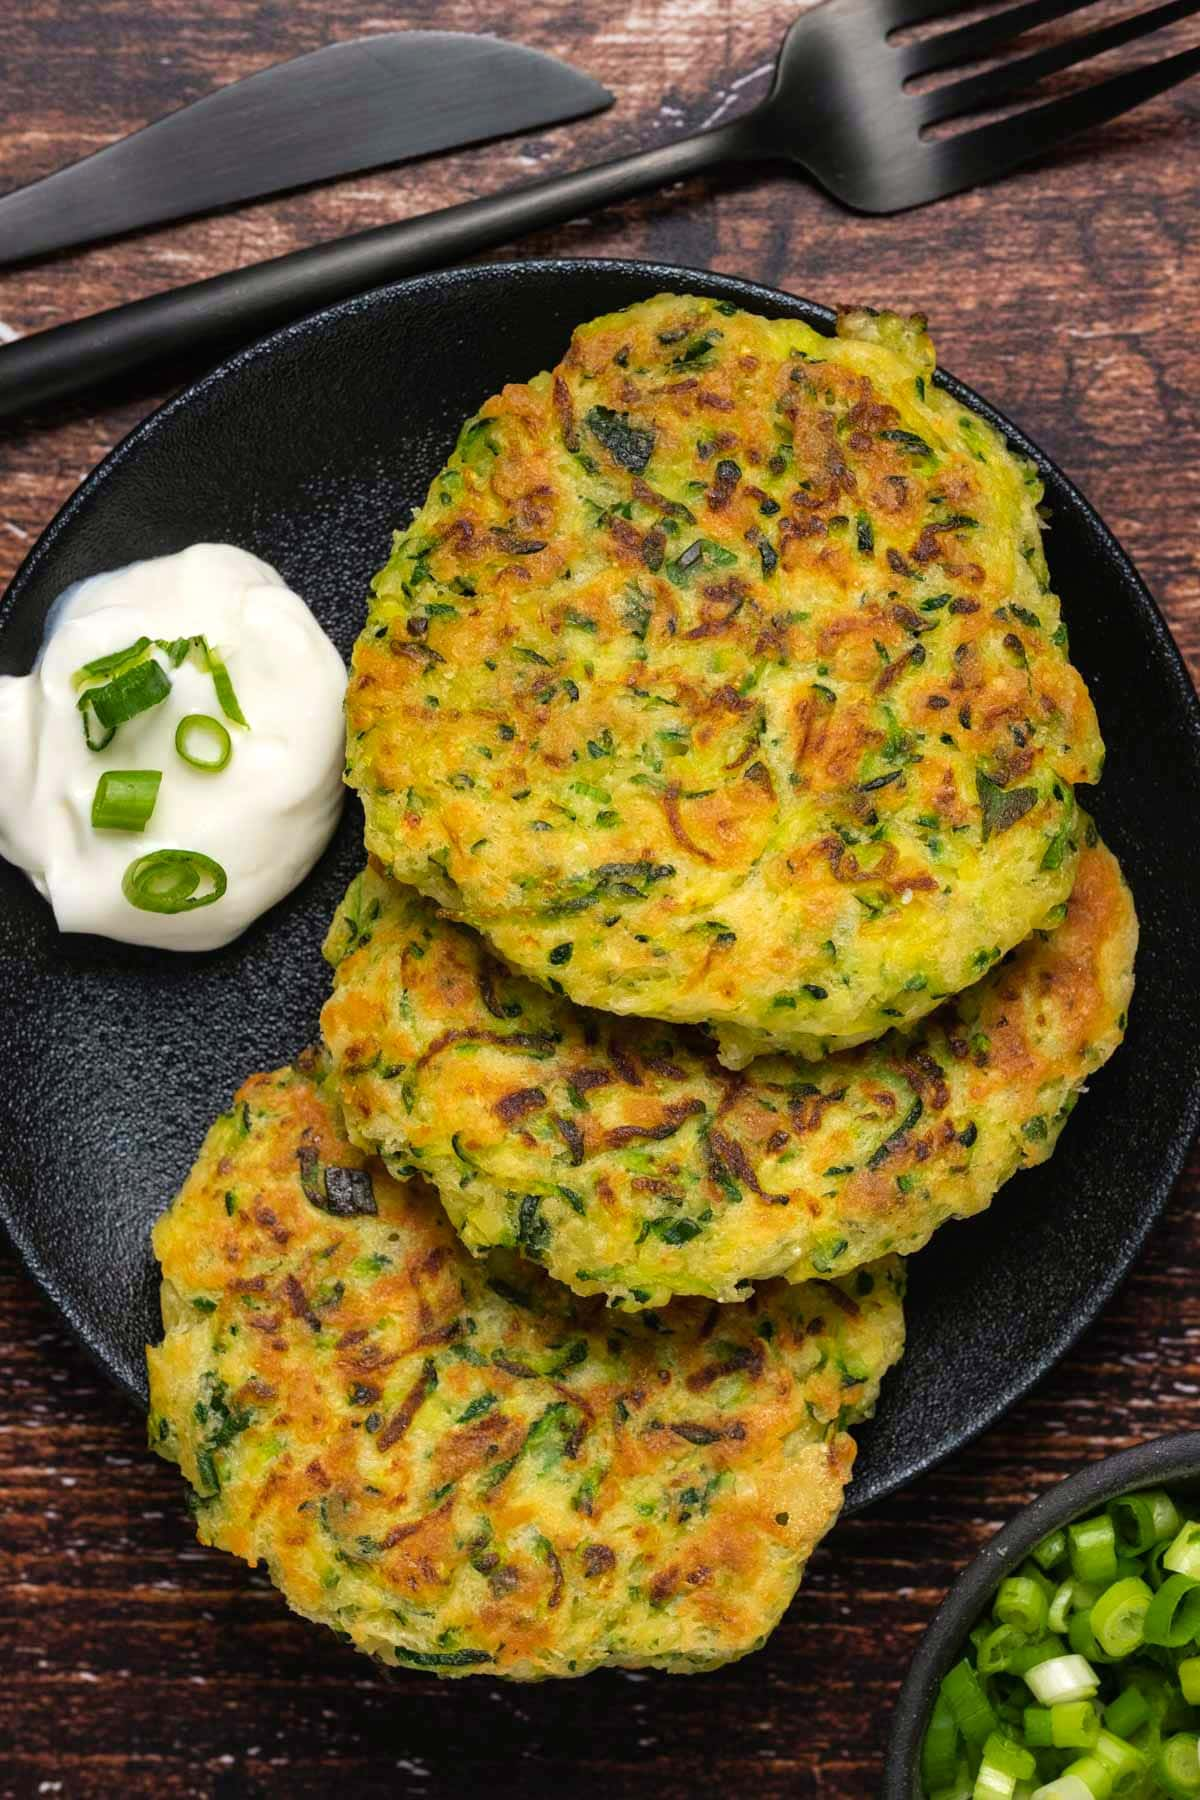 Zucchini fritters on a black plate.